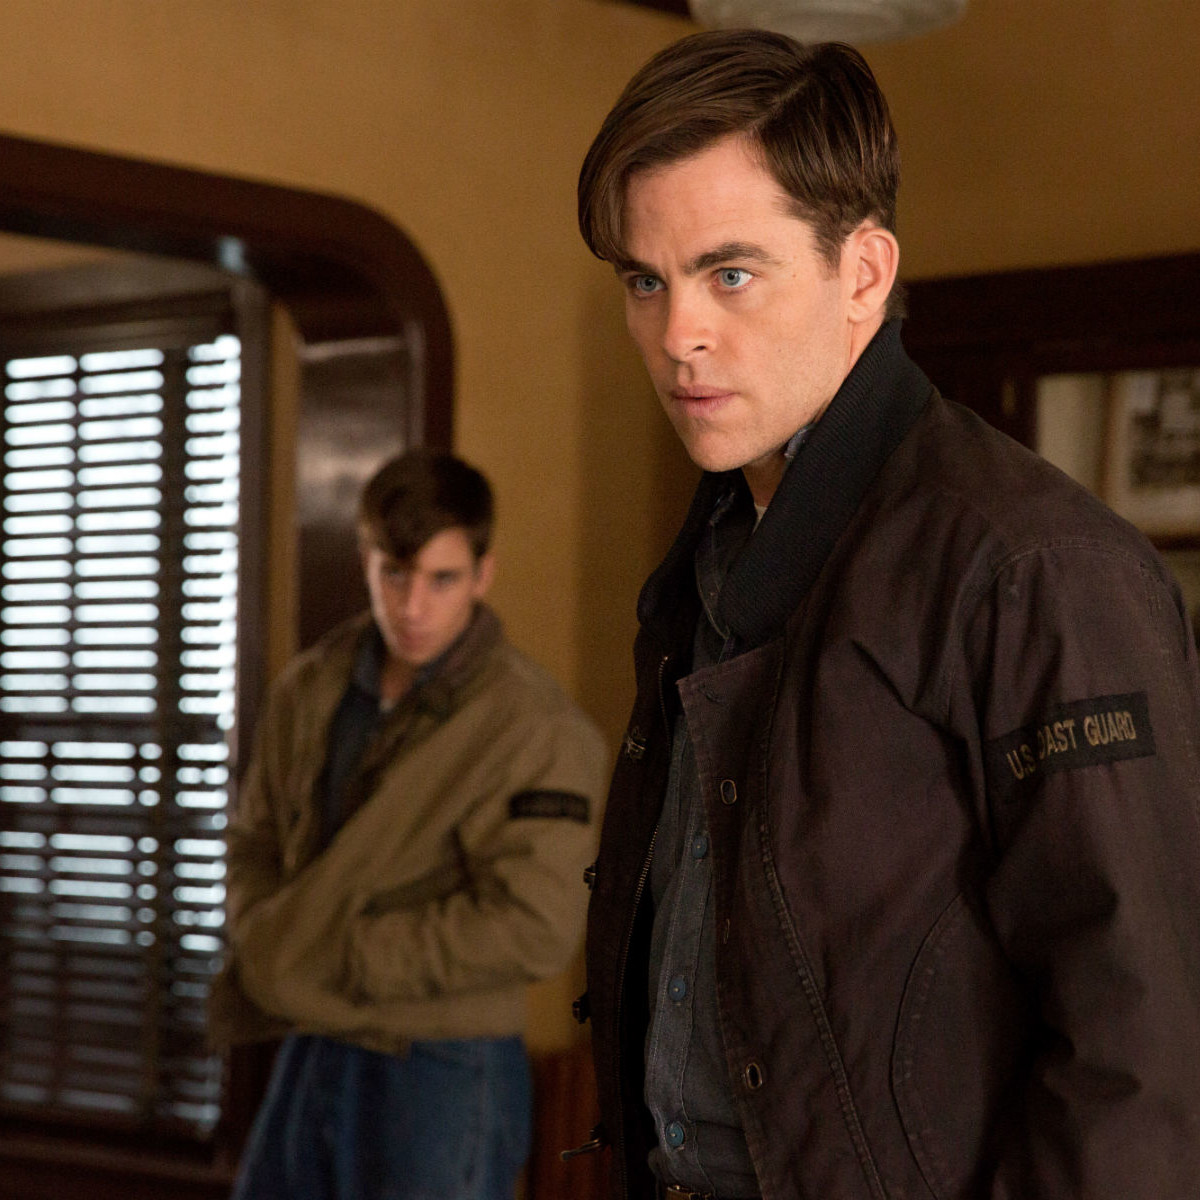 Chris Pine in The Finest Hours